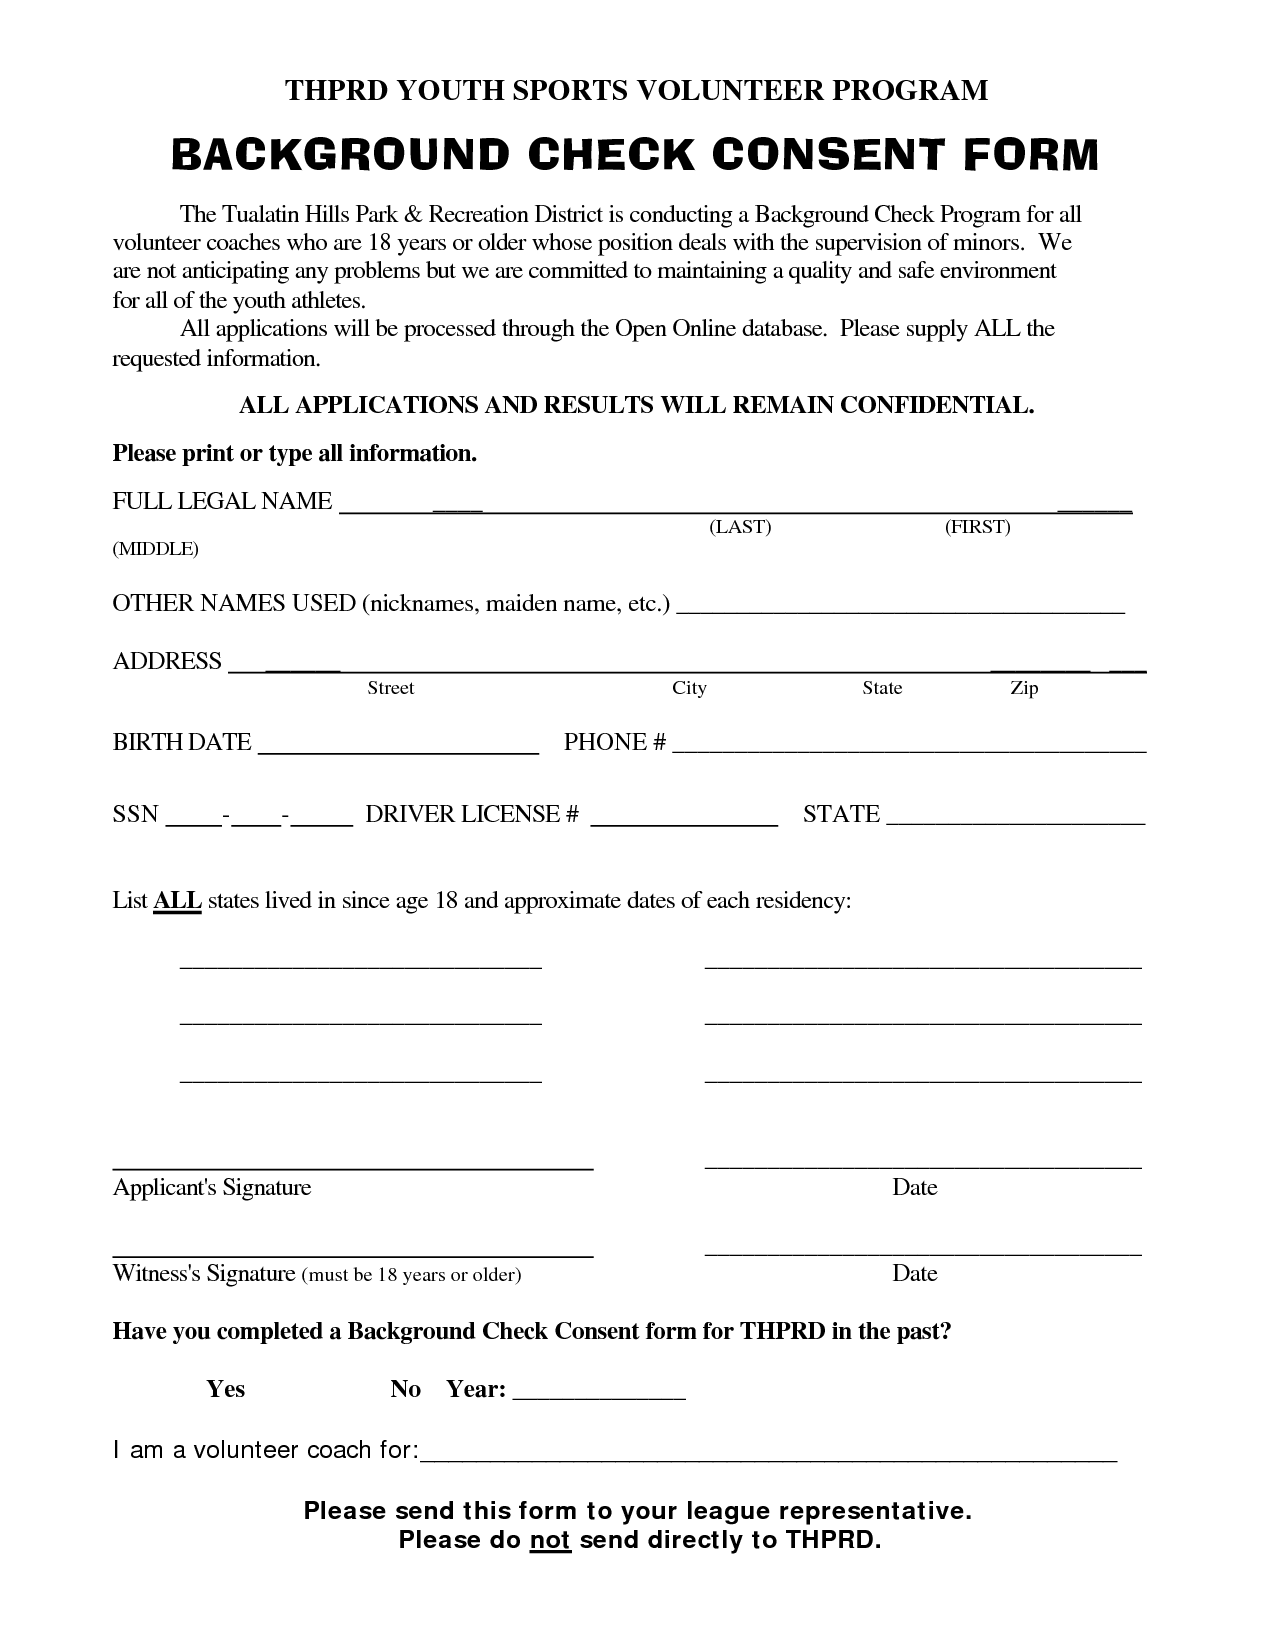 Background Check Consent Form Template The top 2 Background Check – Background Check Form